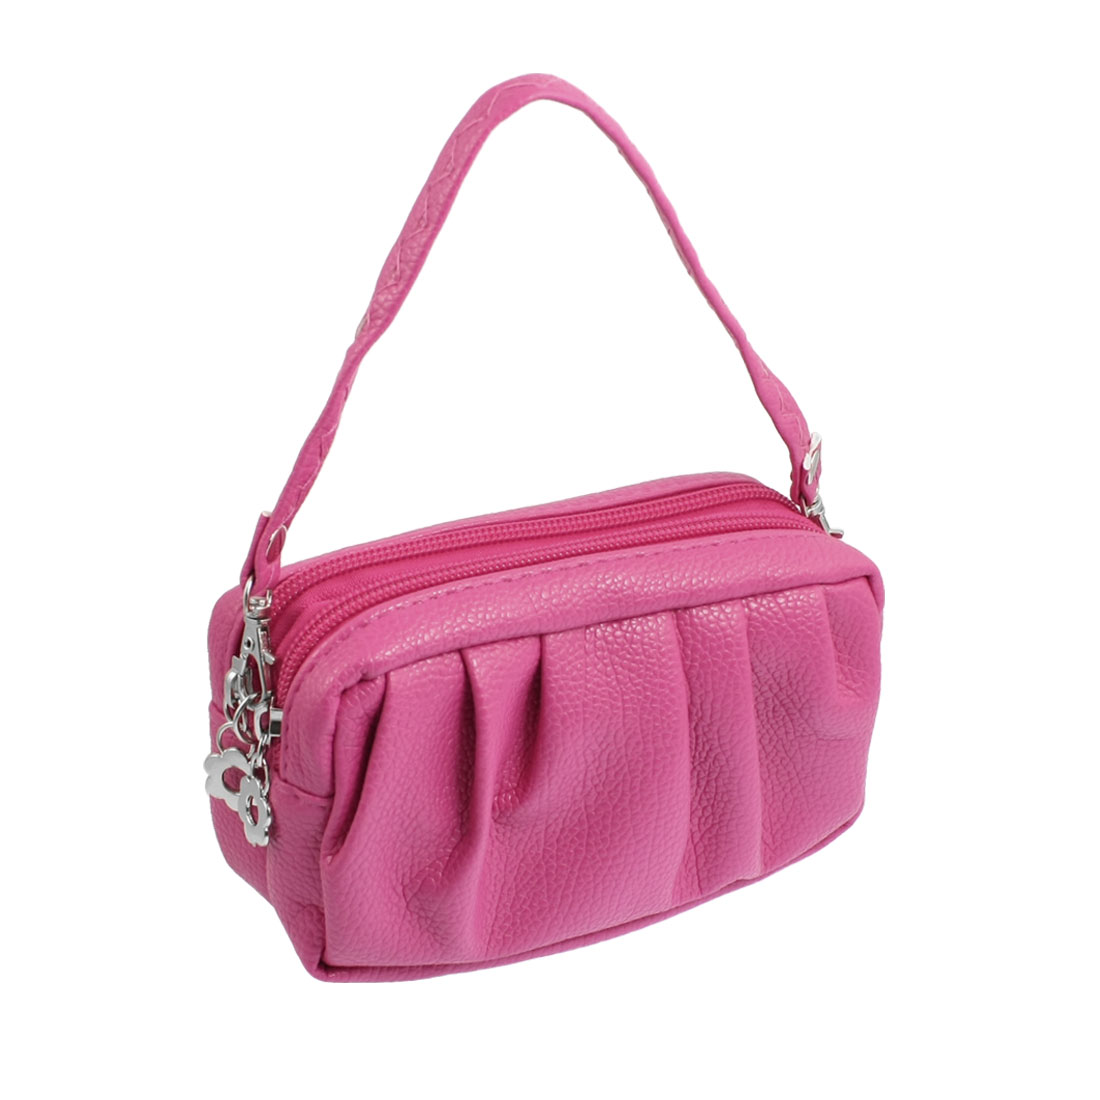 Women Fuchsia Ruched Faux Leather Handbag Purse w Lobster Clasp Strap